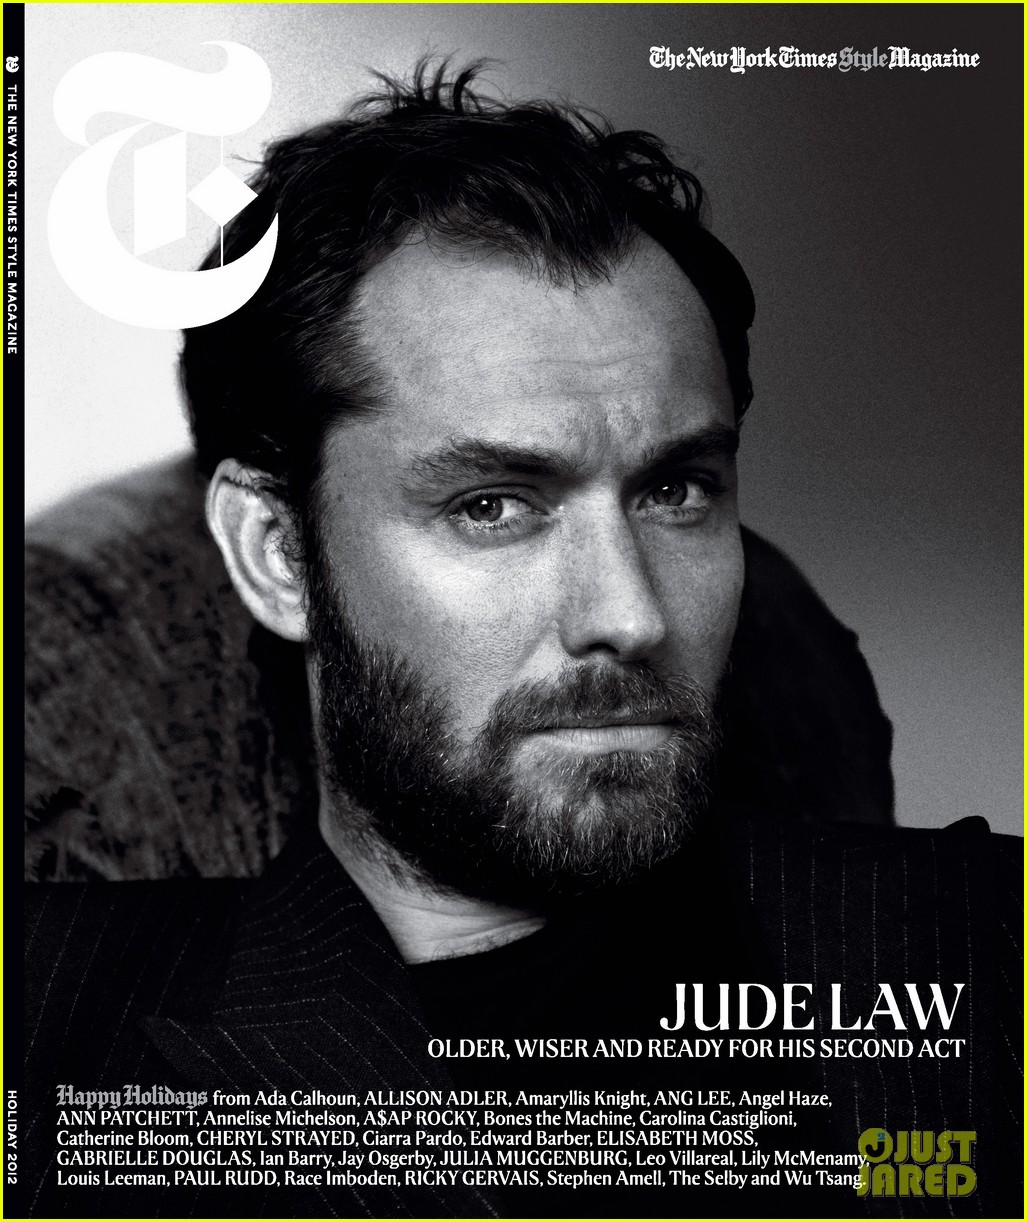 jude law im not that pretty young thing anymore 012766051